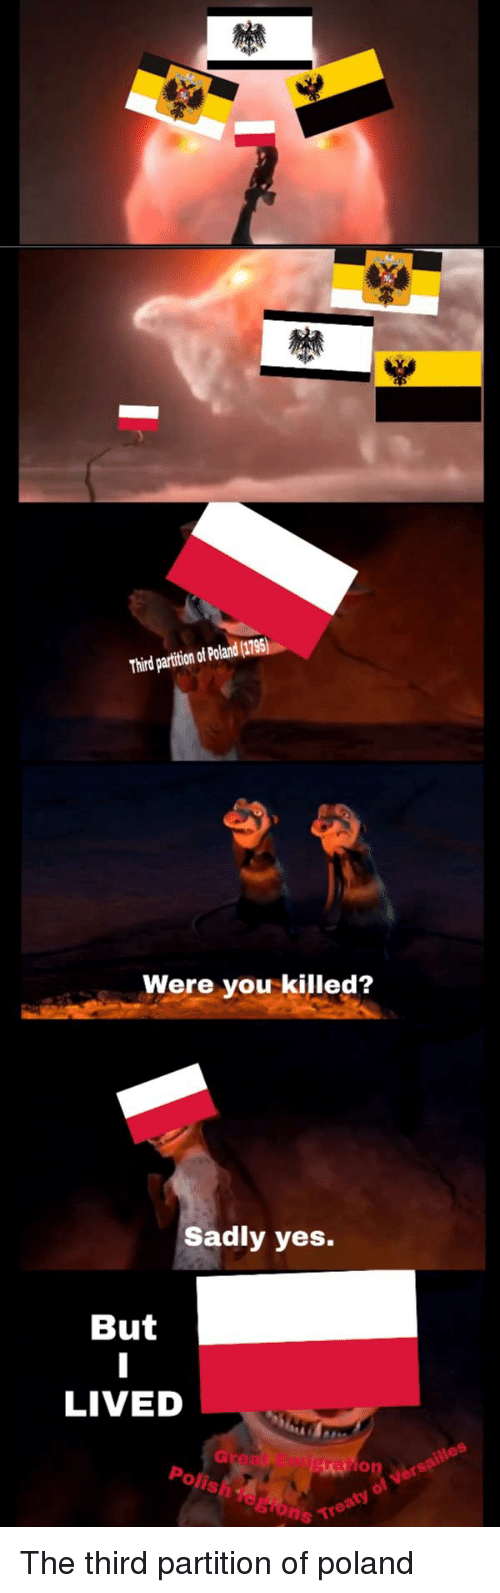 Dank Memes, Poland, and Yes: Third partition of Poland (1795)  Were you killed?  Sadly yes.  But  LIVED  on je  Polis